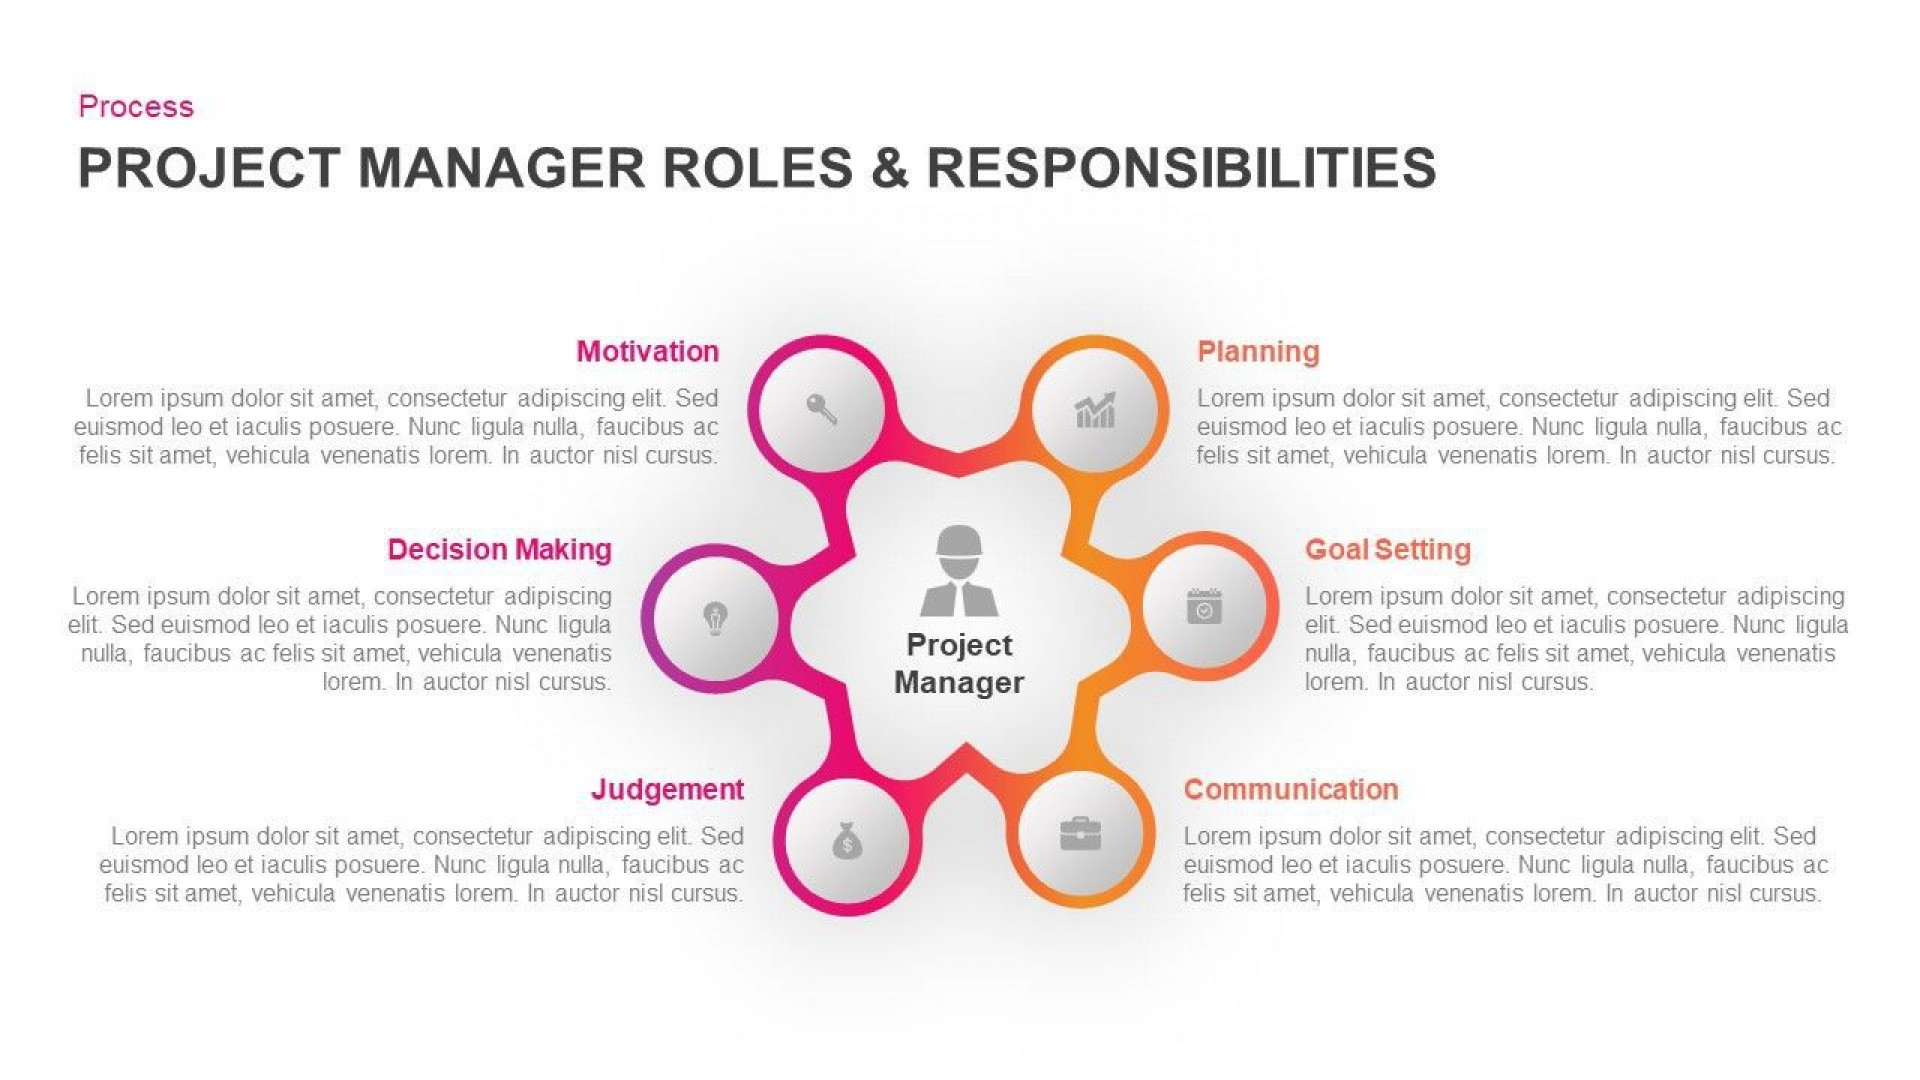 006 Imposing Project Role And Responsibilitie Template Powerpoint Sample 1920